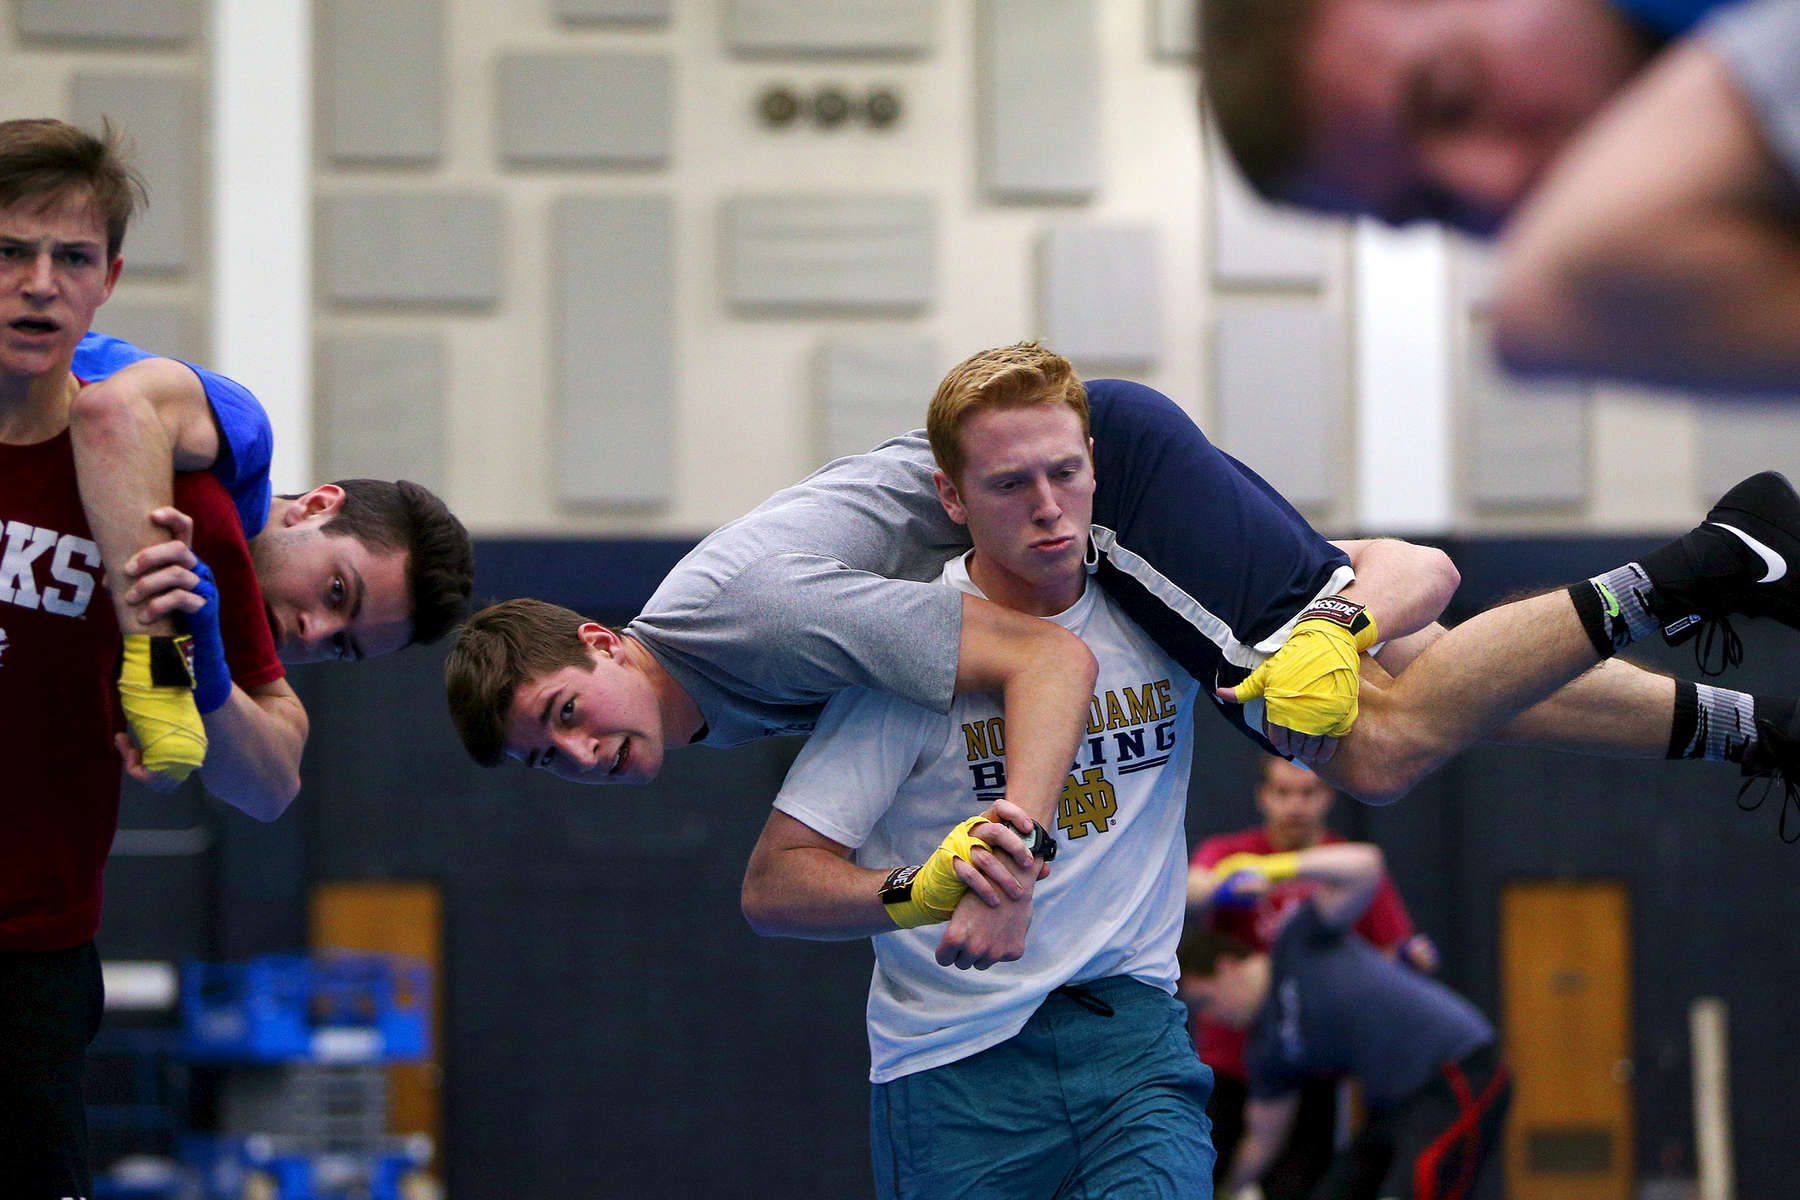 Sean Himel, at center, is carried by a fellow student as they participate in a practice for the Bengal Bouts, an annual charity boxing tournament hosted by the men's Boxing Club at the University of Notre Dame at the university's Joyce Athletic Center in Notre Dame, Ind. Proceeds from the event go to the Holy Cross Missions in Bangladesh.